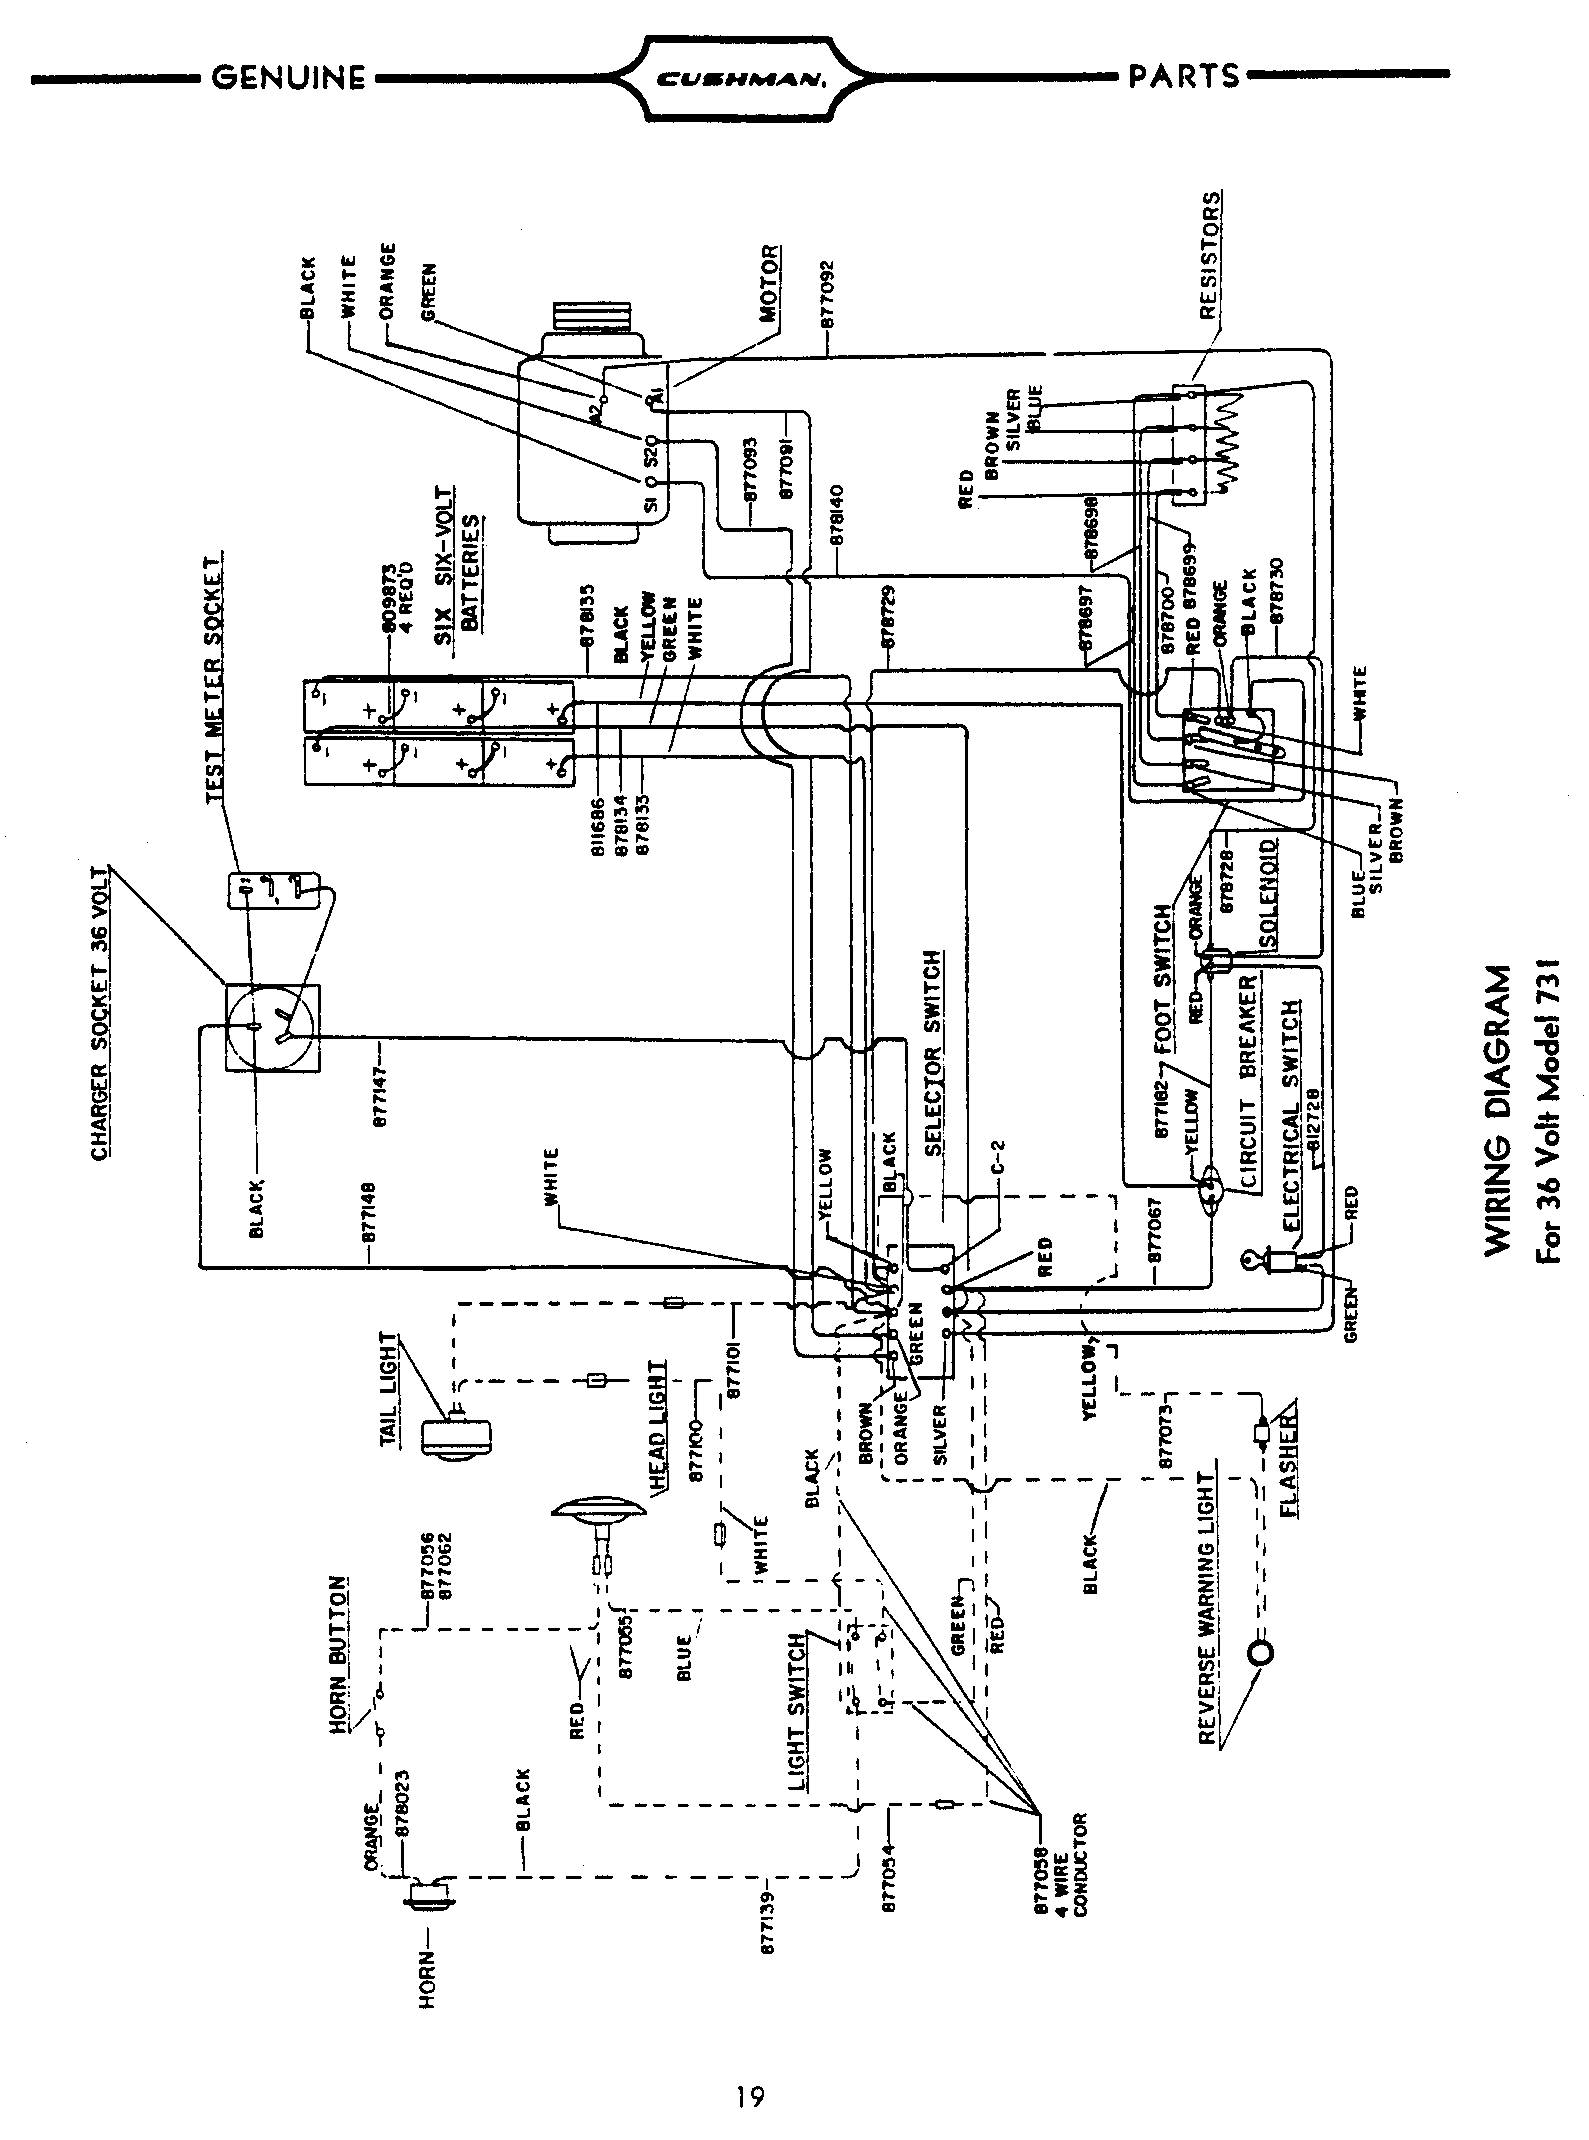 Wiring Diagram For Cushman A